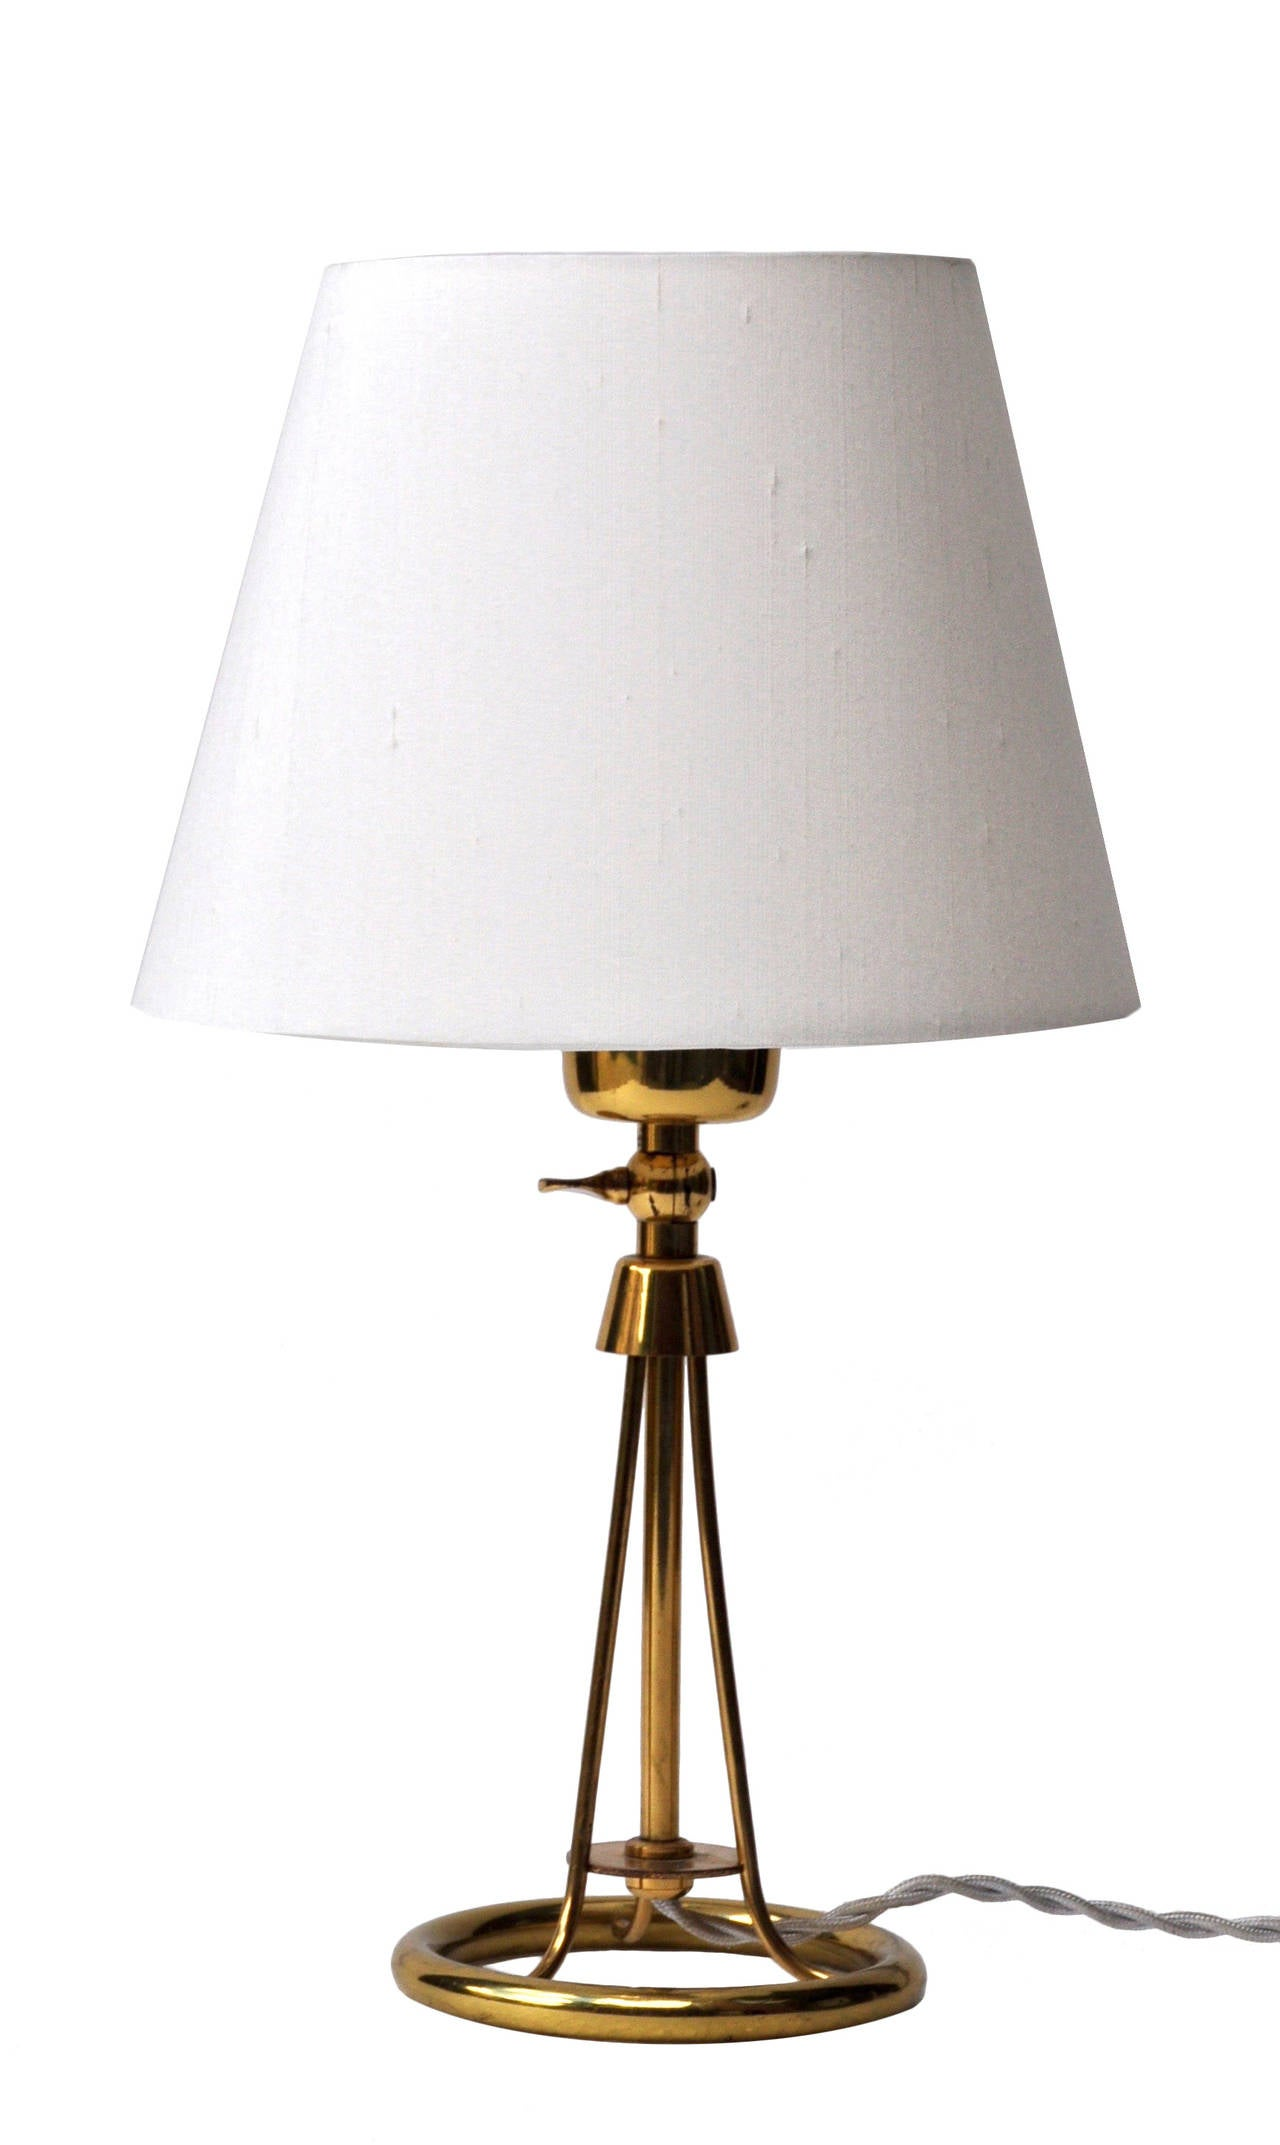 Pair Of Alfred Muller Bedside Lamps For Sale At 1stdibs